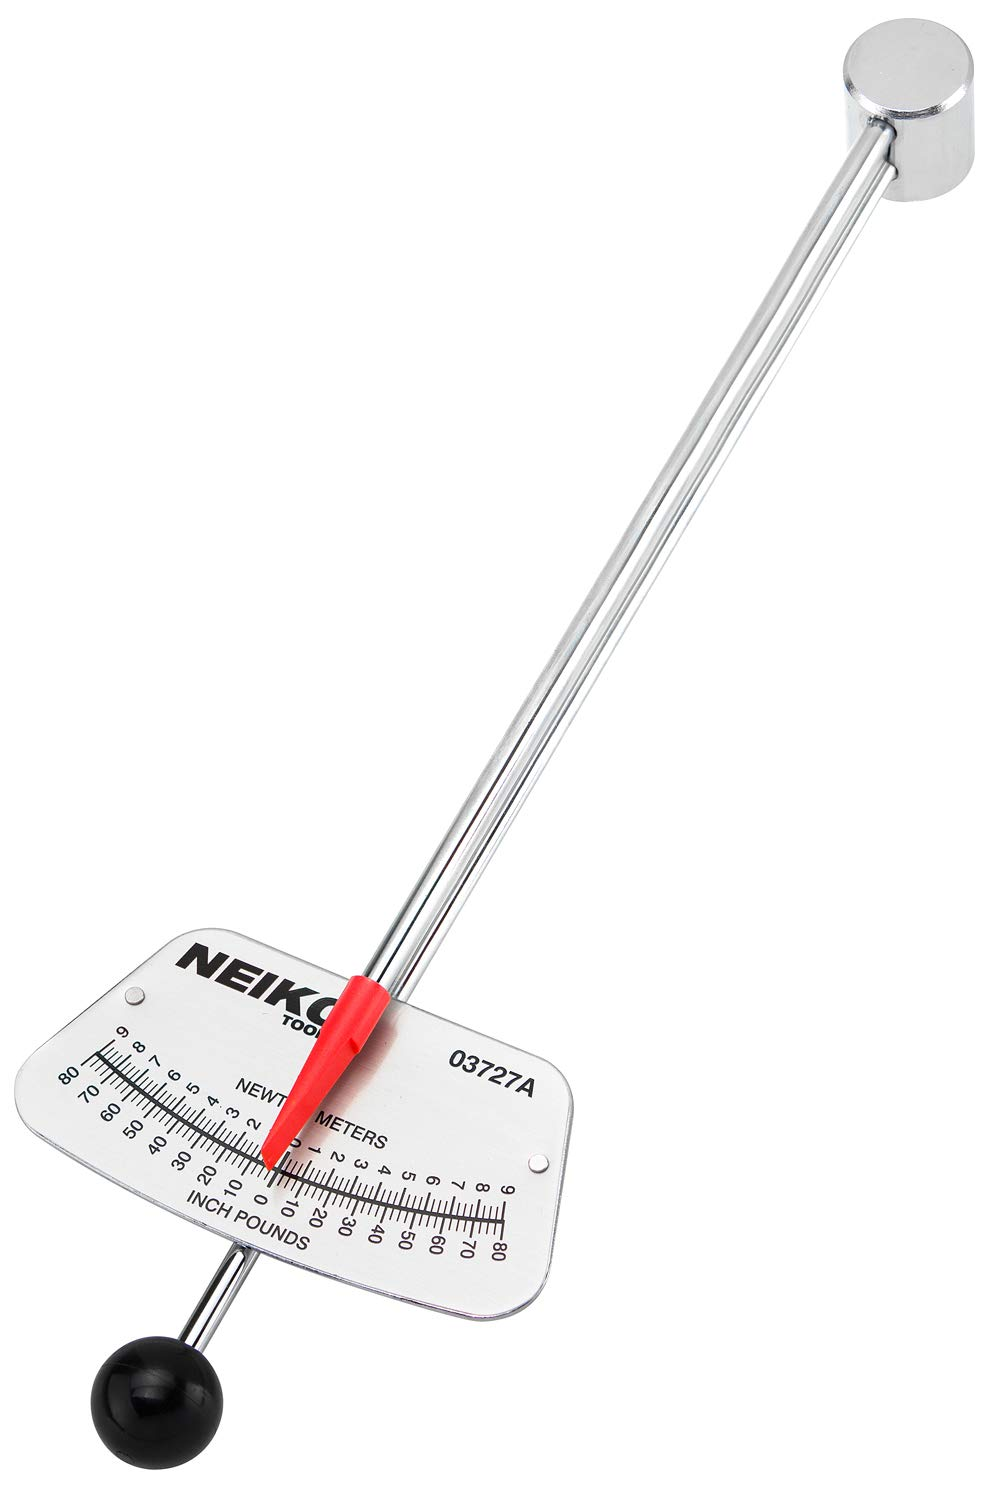 Neiko 03727A 1/4-Inch Drive Beam Style Torque Wrench | 0-80 in/lb 9 Nm by Neiko